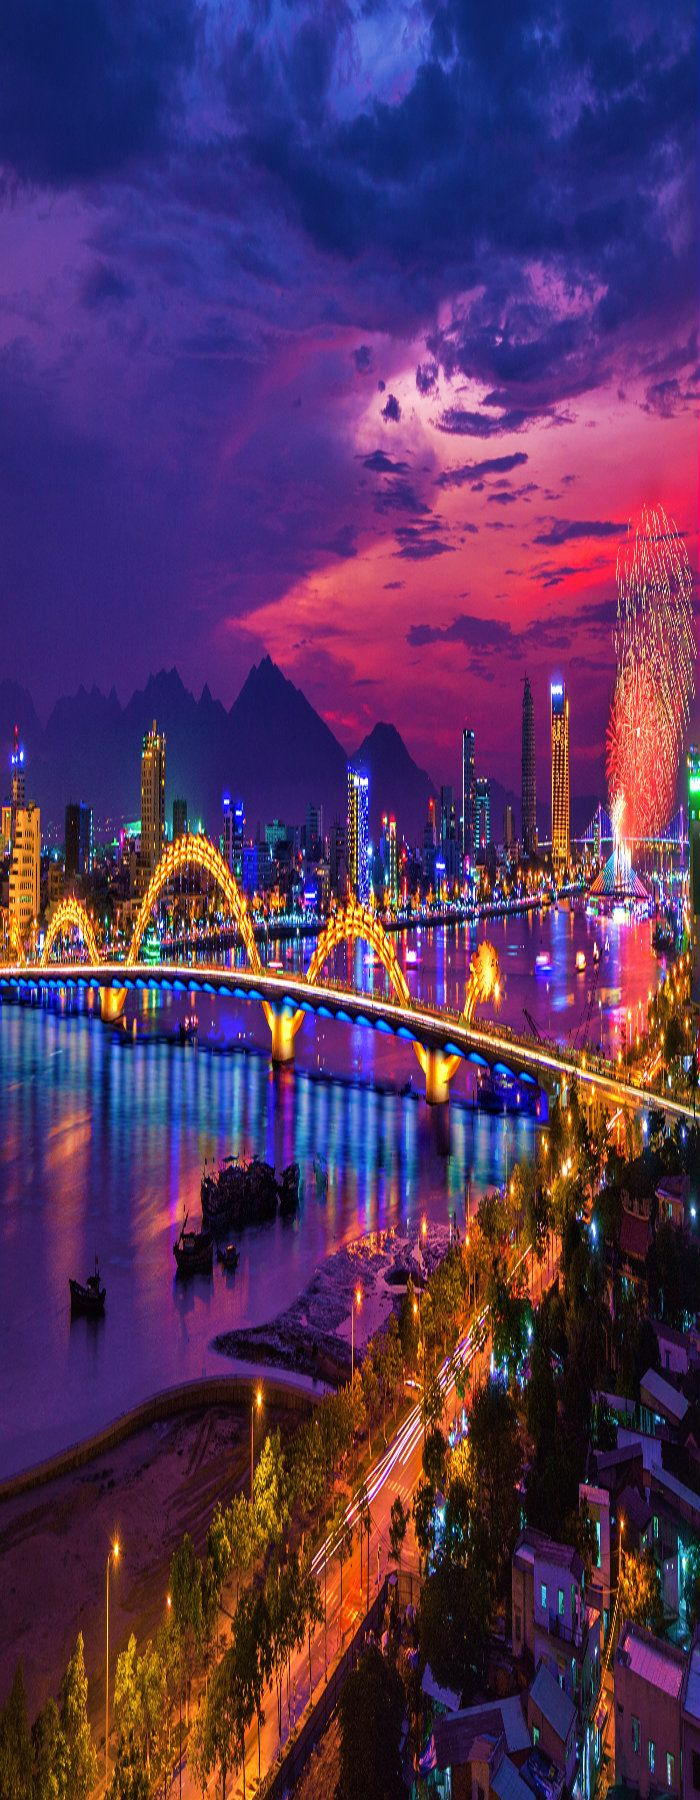 The Dragon Bridge is a bridge over the River Hàn in Da Nang, Vietnam. Main span was completed on October 26, 2012. The bridge was opened to traffic on March 29, 2013, the 38th anniversary of the liberation of Da Nang City. (P)